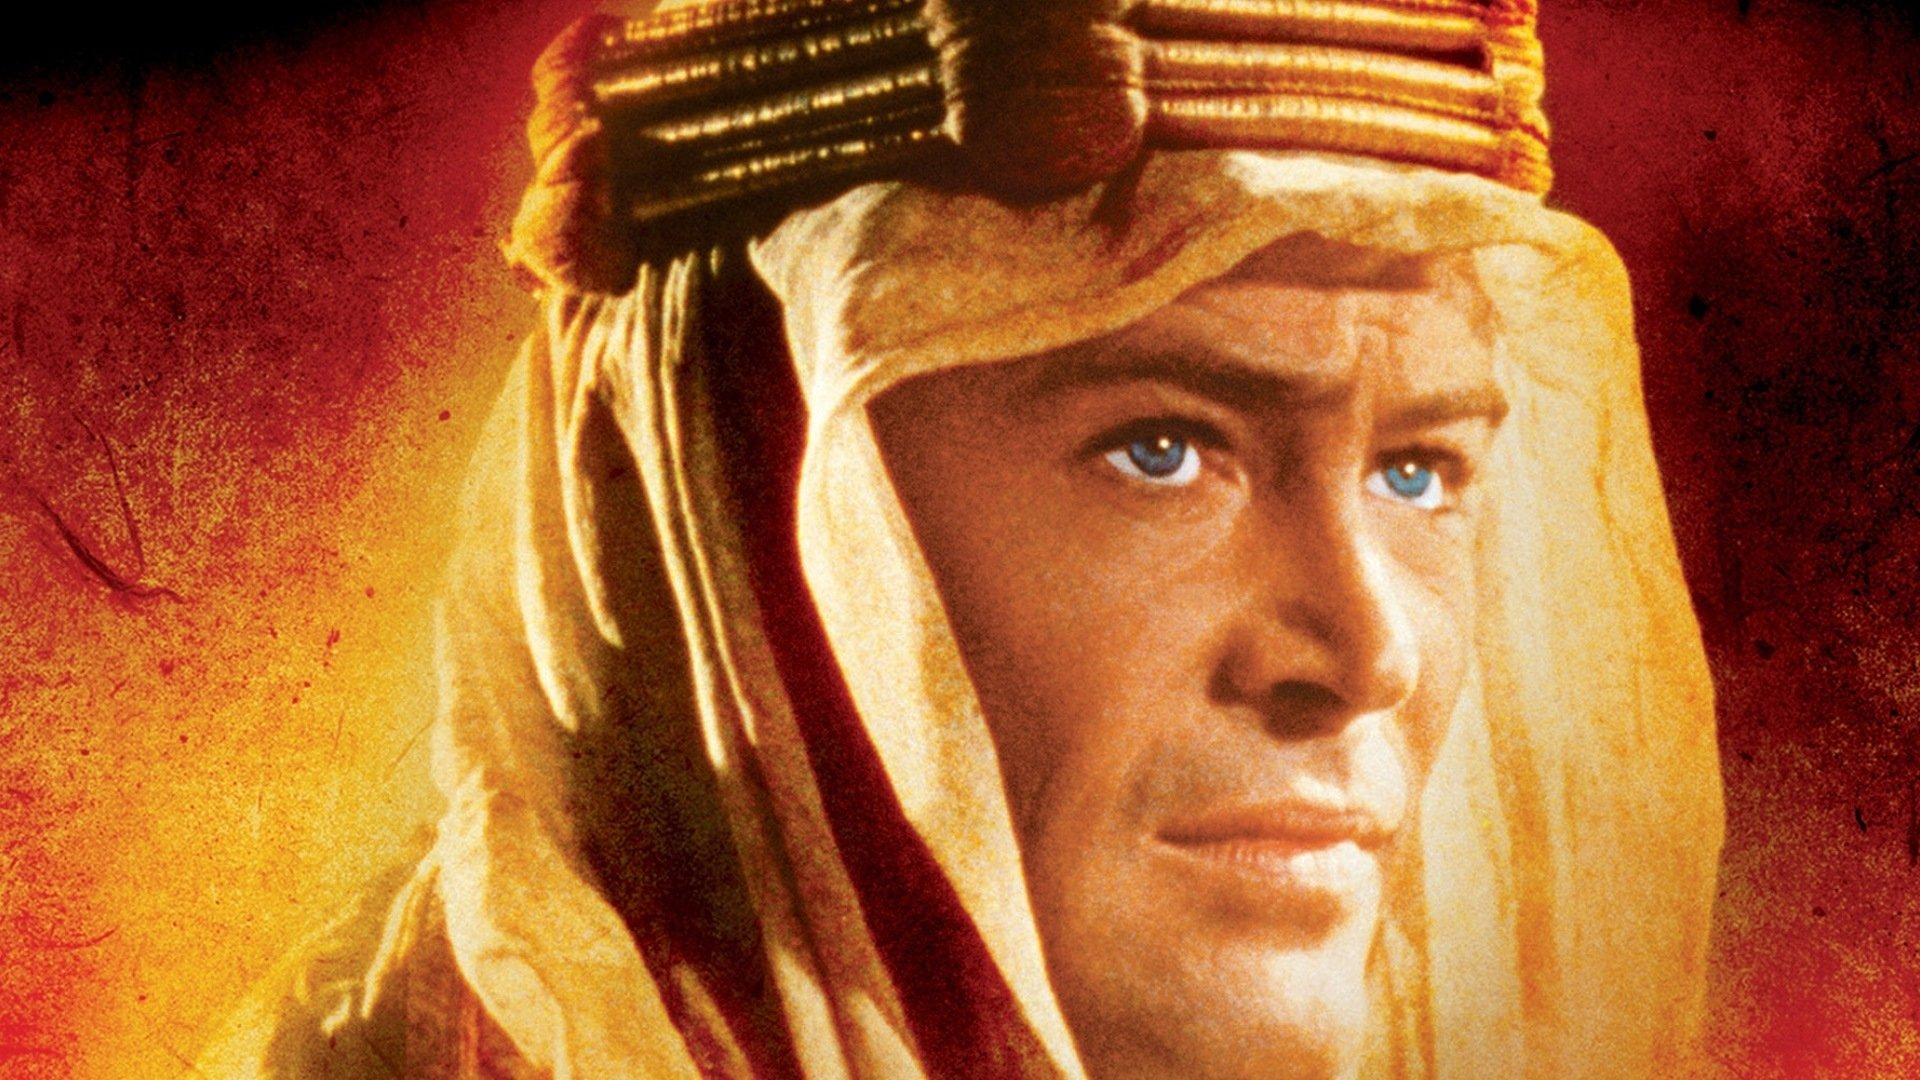 8 Lawrence Of Arabia HD Wallpapers Background Images   Wallpaper 1920x1080